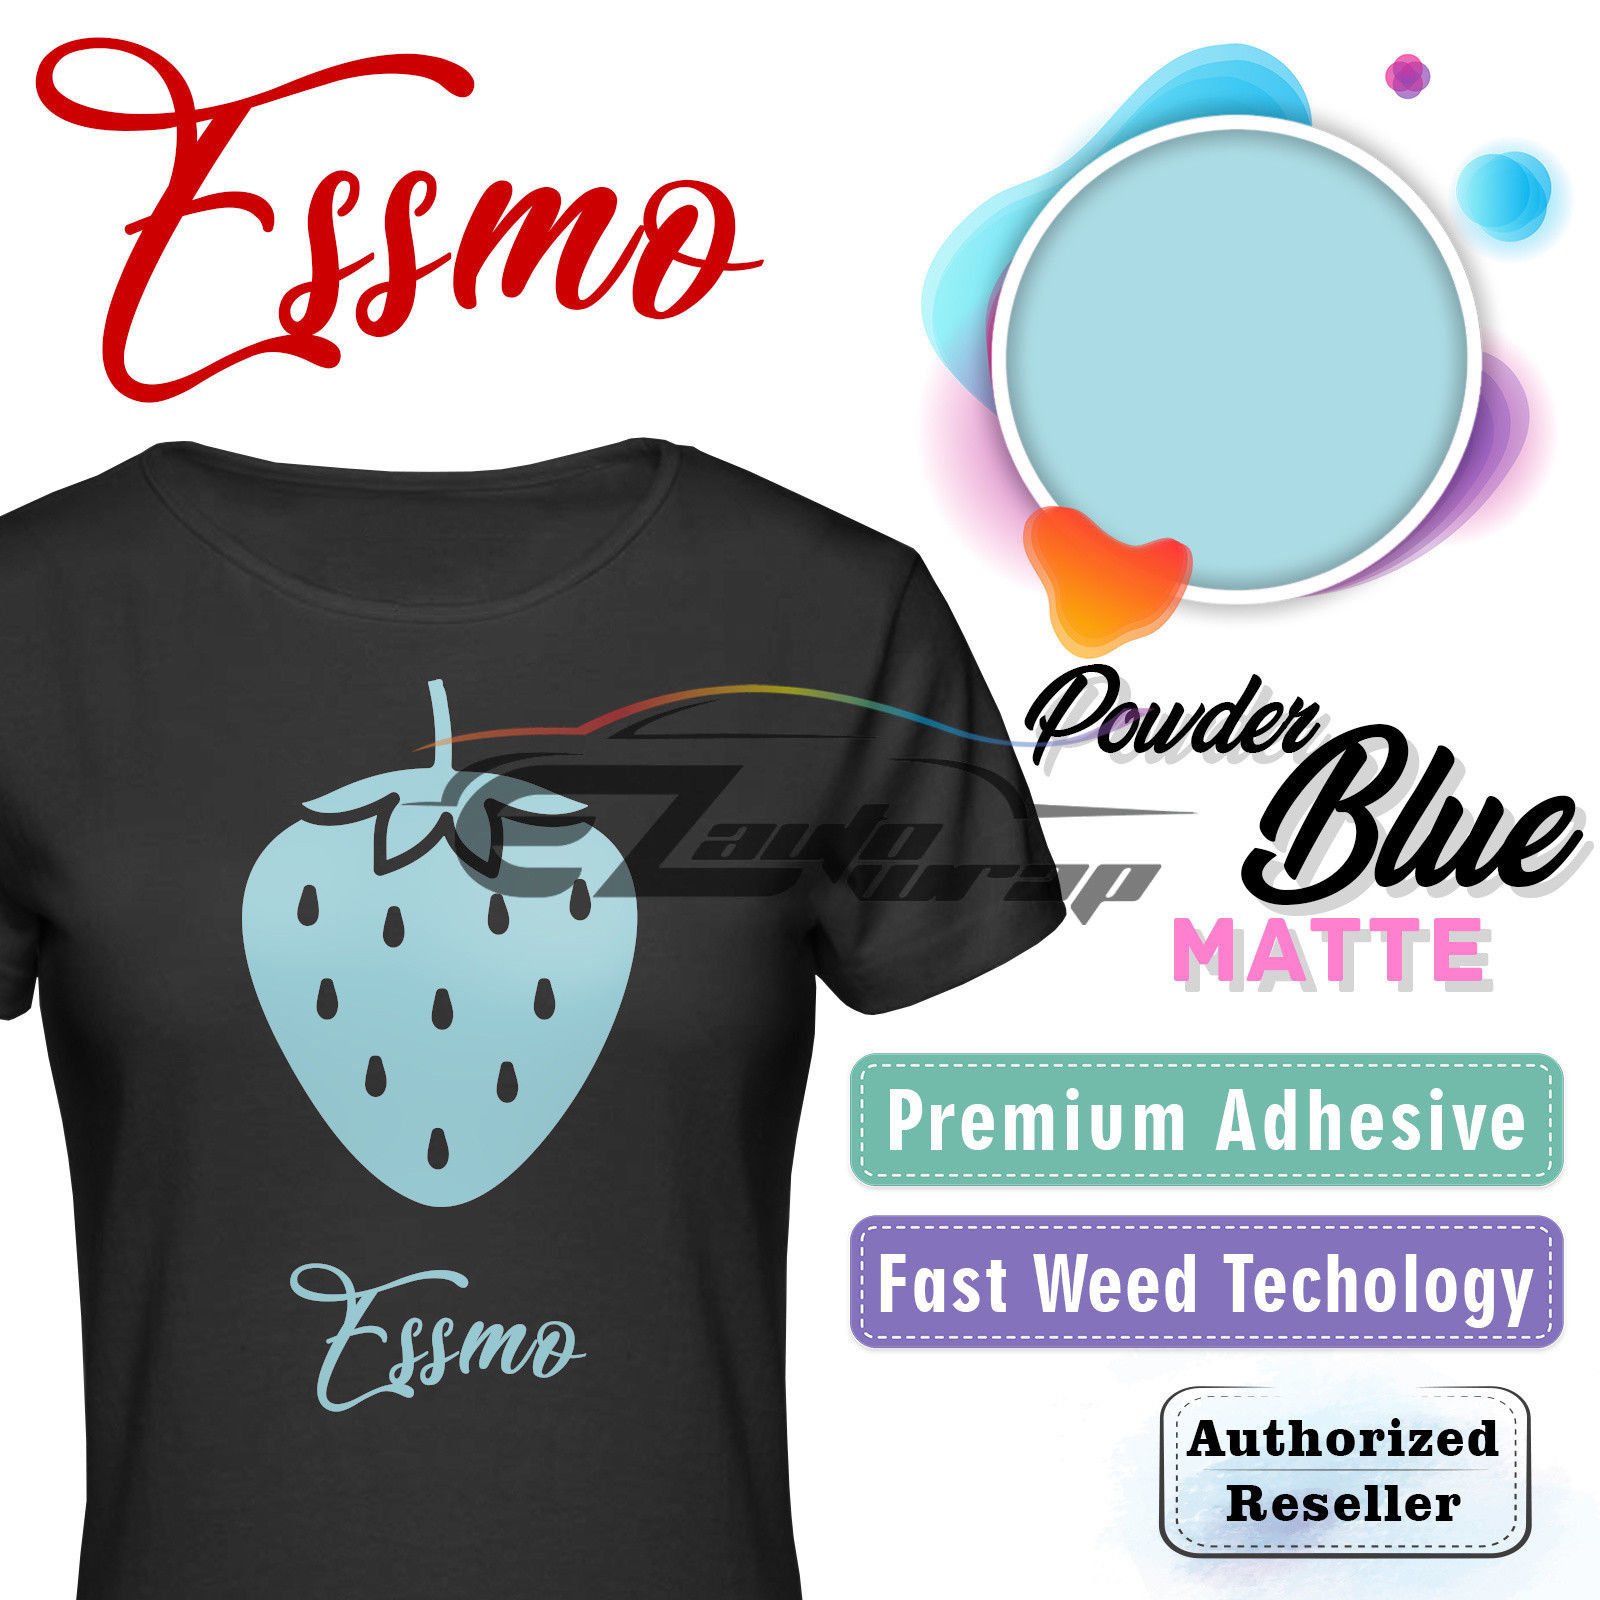 "ESSMO Powder Blue Matte Solid Heat Transfer Vinyl HTV Sheet T-Shirt 20"" Wide Iron On Heat Press 20""x12"""